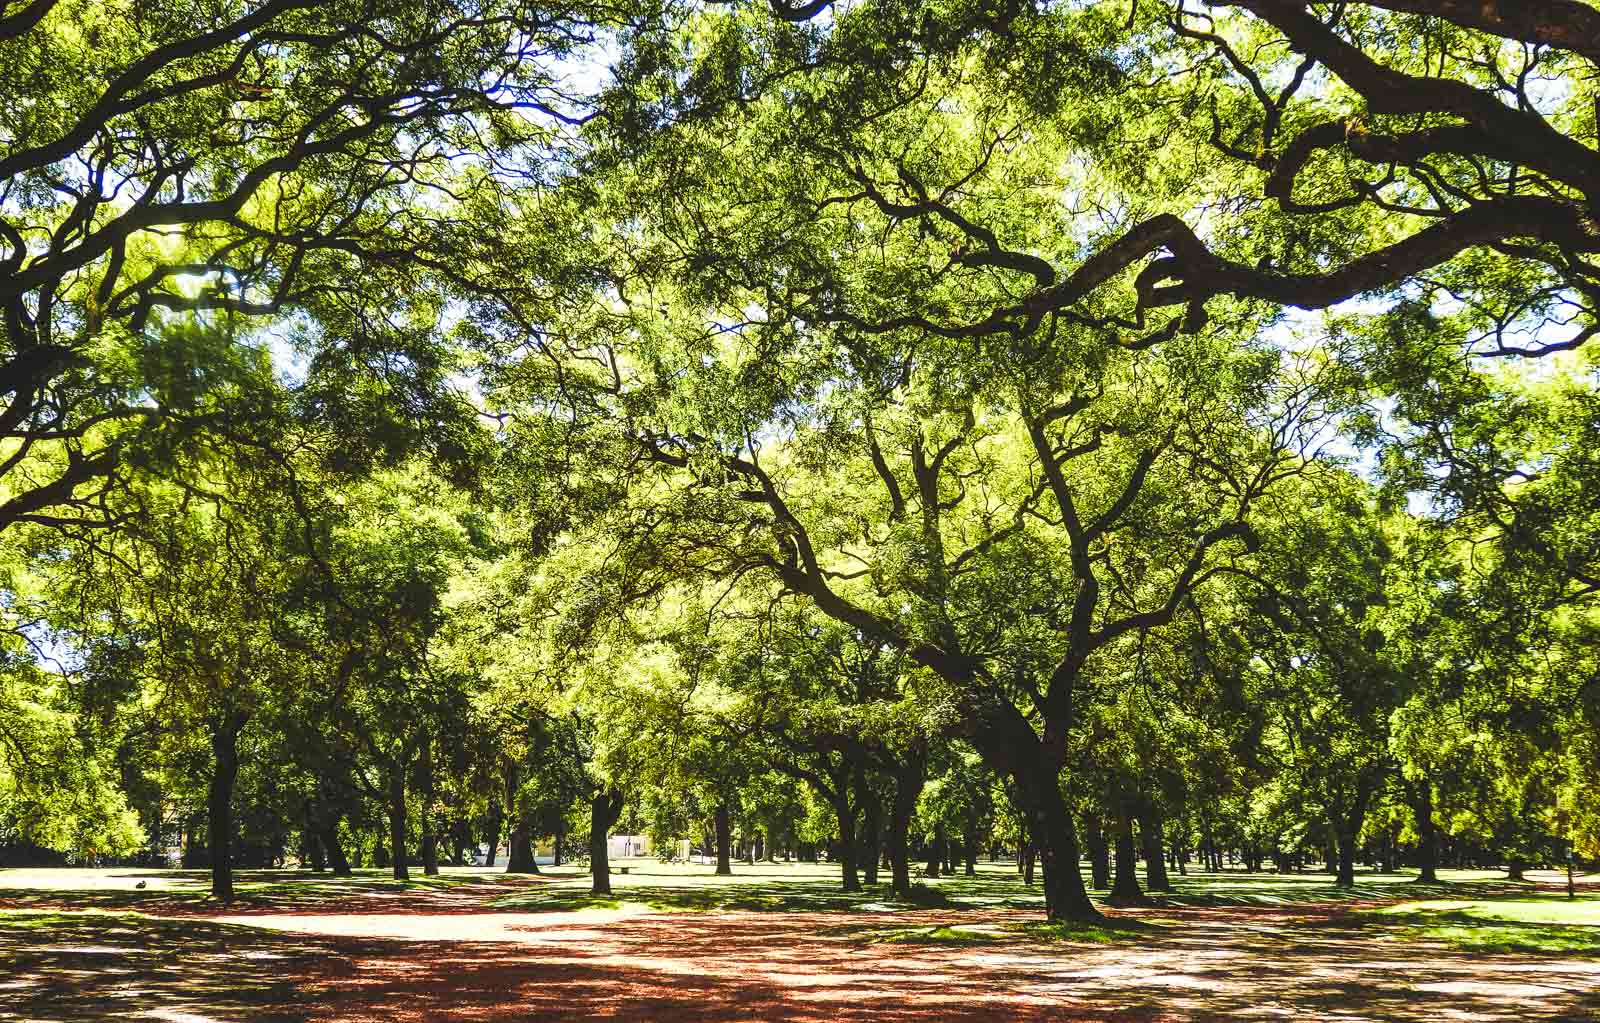 Here's why after travelling Buenos Aries I want to live there. A view of one of the many lush green parks in Buenos Aries with lots of trees, ideal for picnics